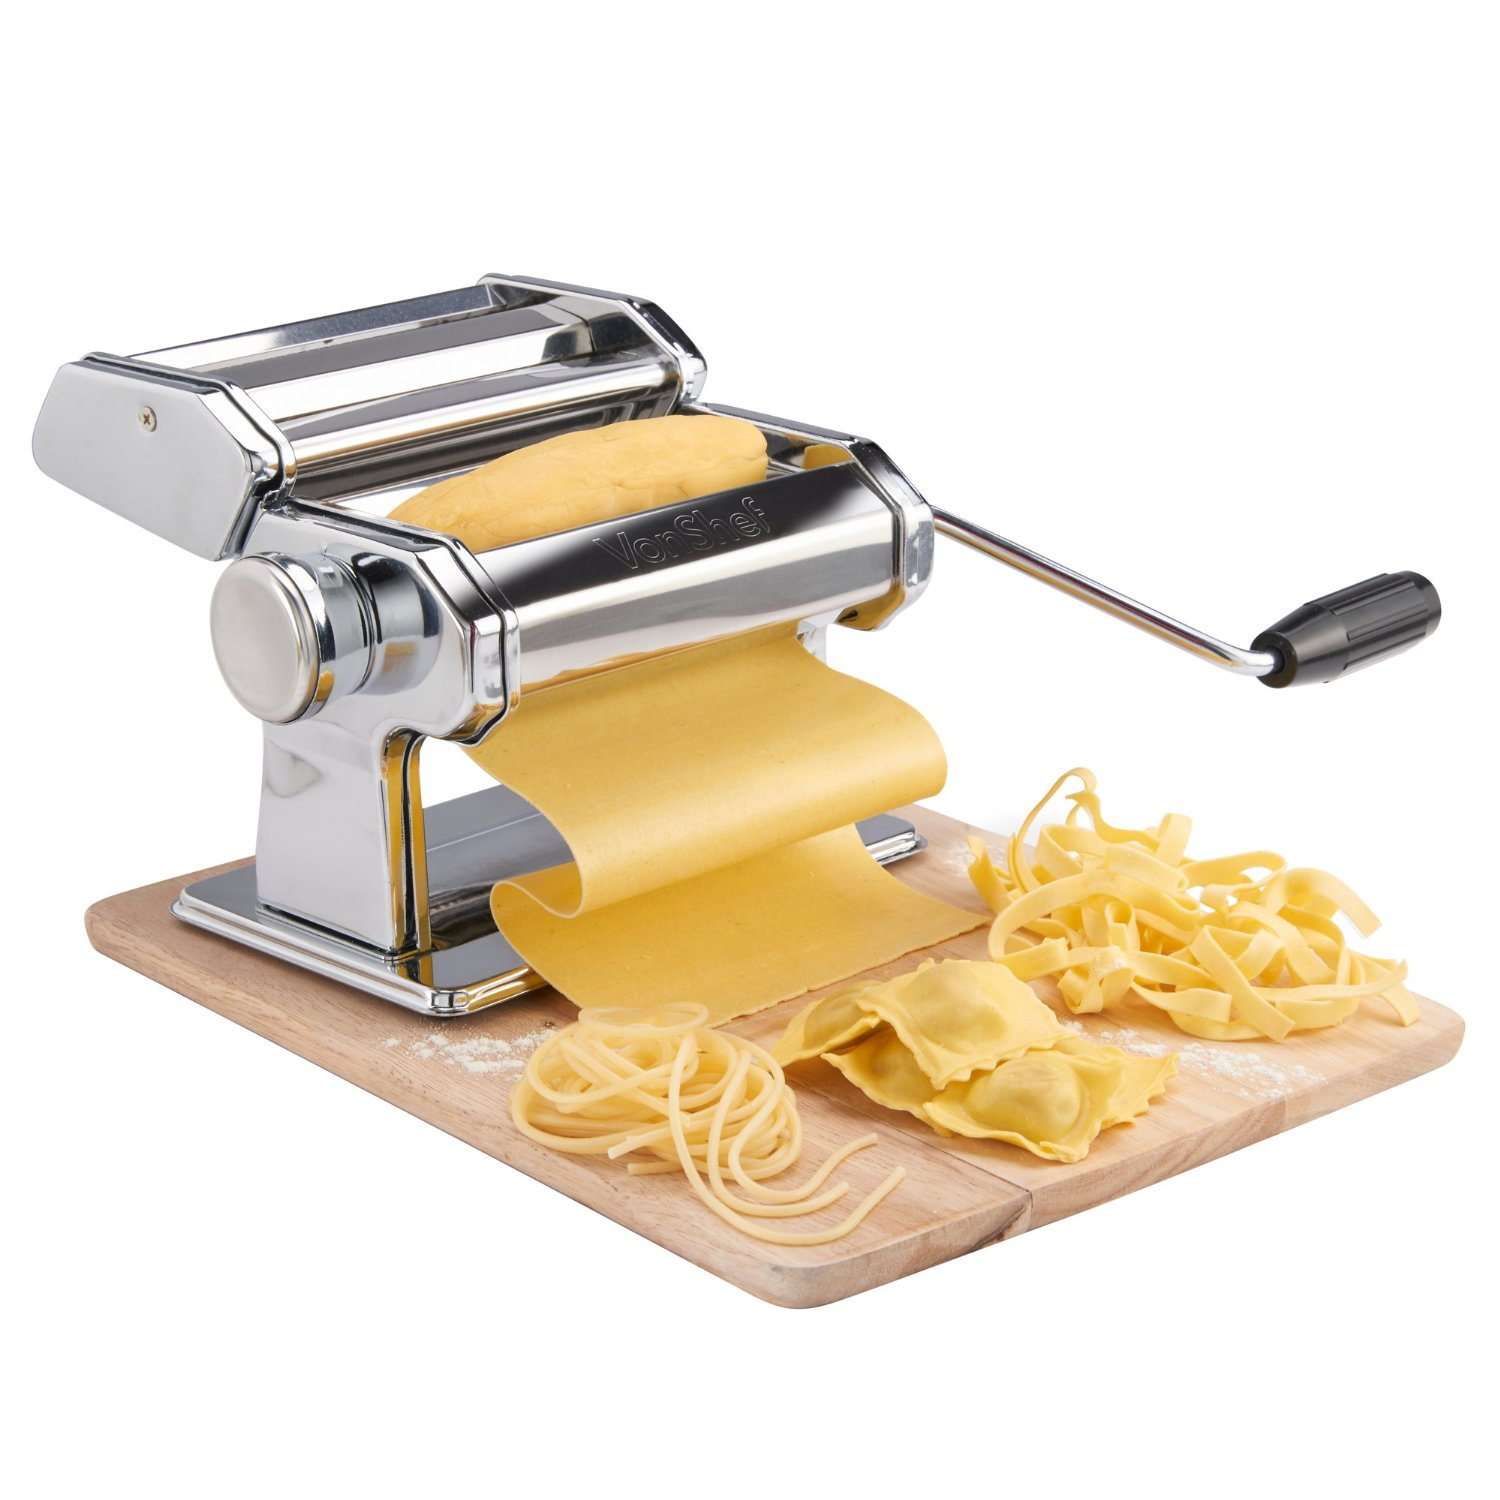 kitchen aid gadgets with Pasta Makers And Machines on Aroma White 6 Cup Pot Style Rice Cooker And Food Steamer Tray also 158751955587834491 in addition The Martha Stewart Show Set Tour together with Top Rated Meat Grinders as well Outstanding Qvc Kitchen Appliances.